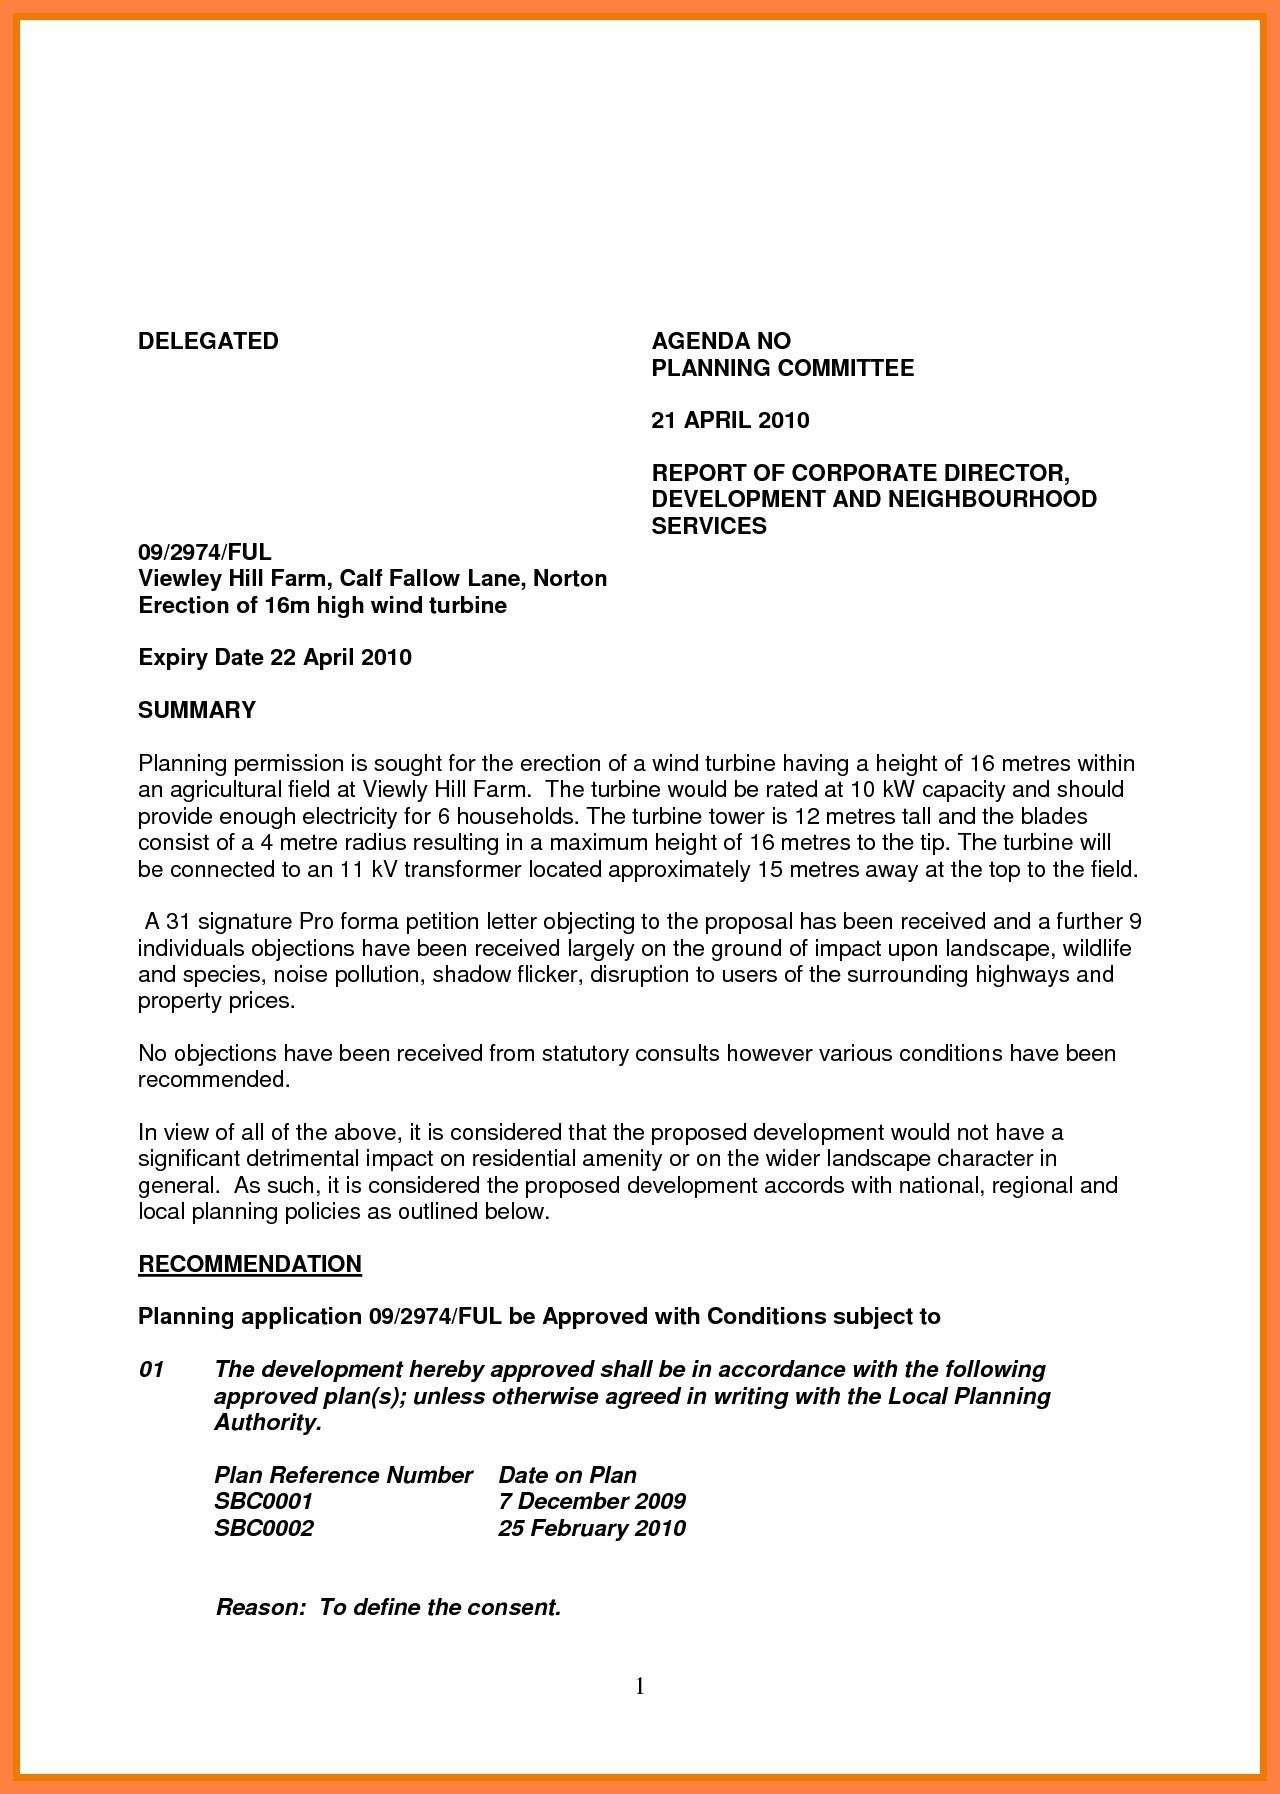 Petition Letter Template - Petition Template to Print